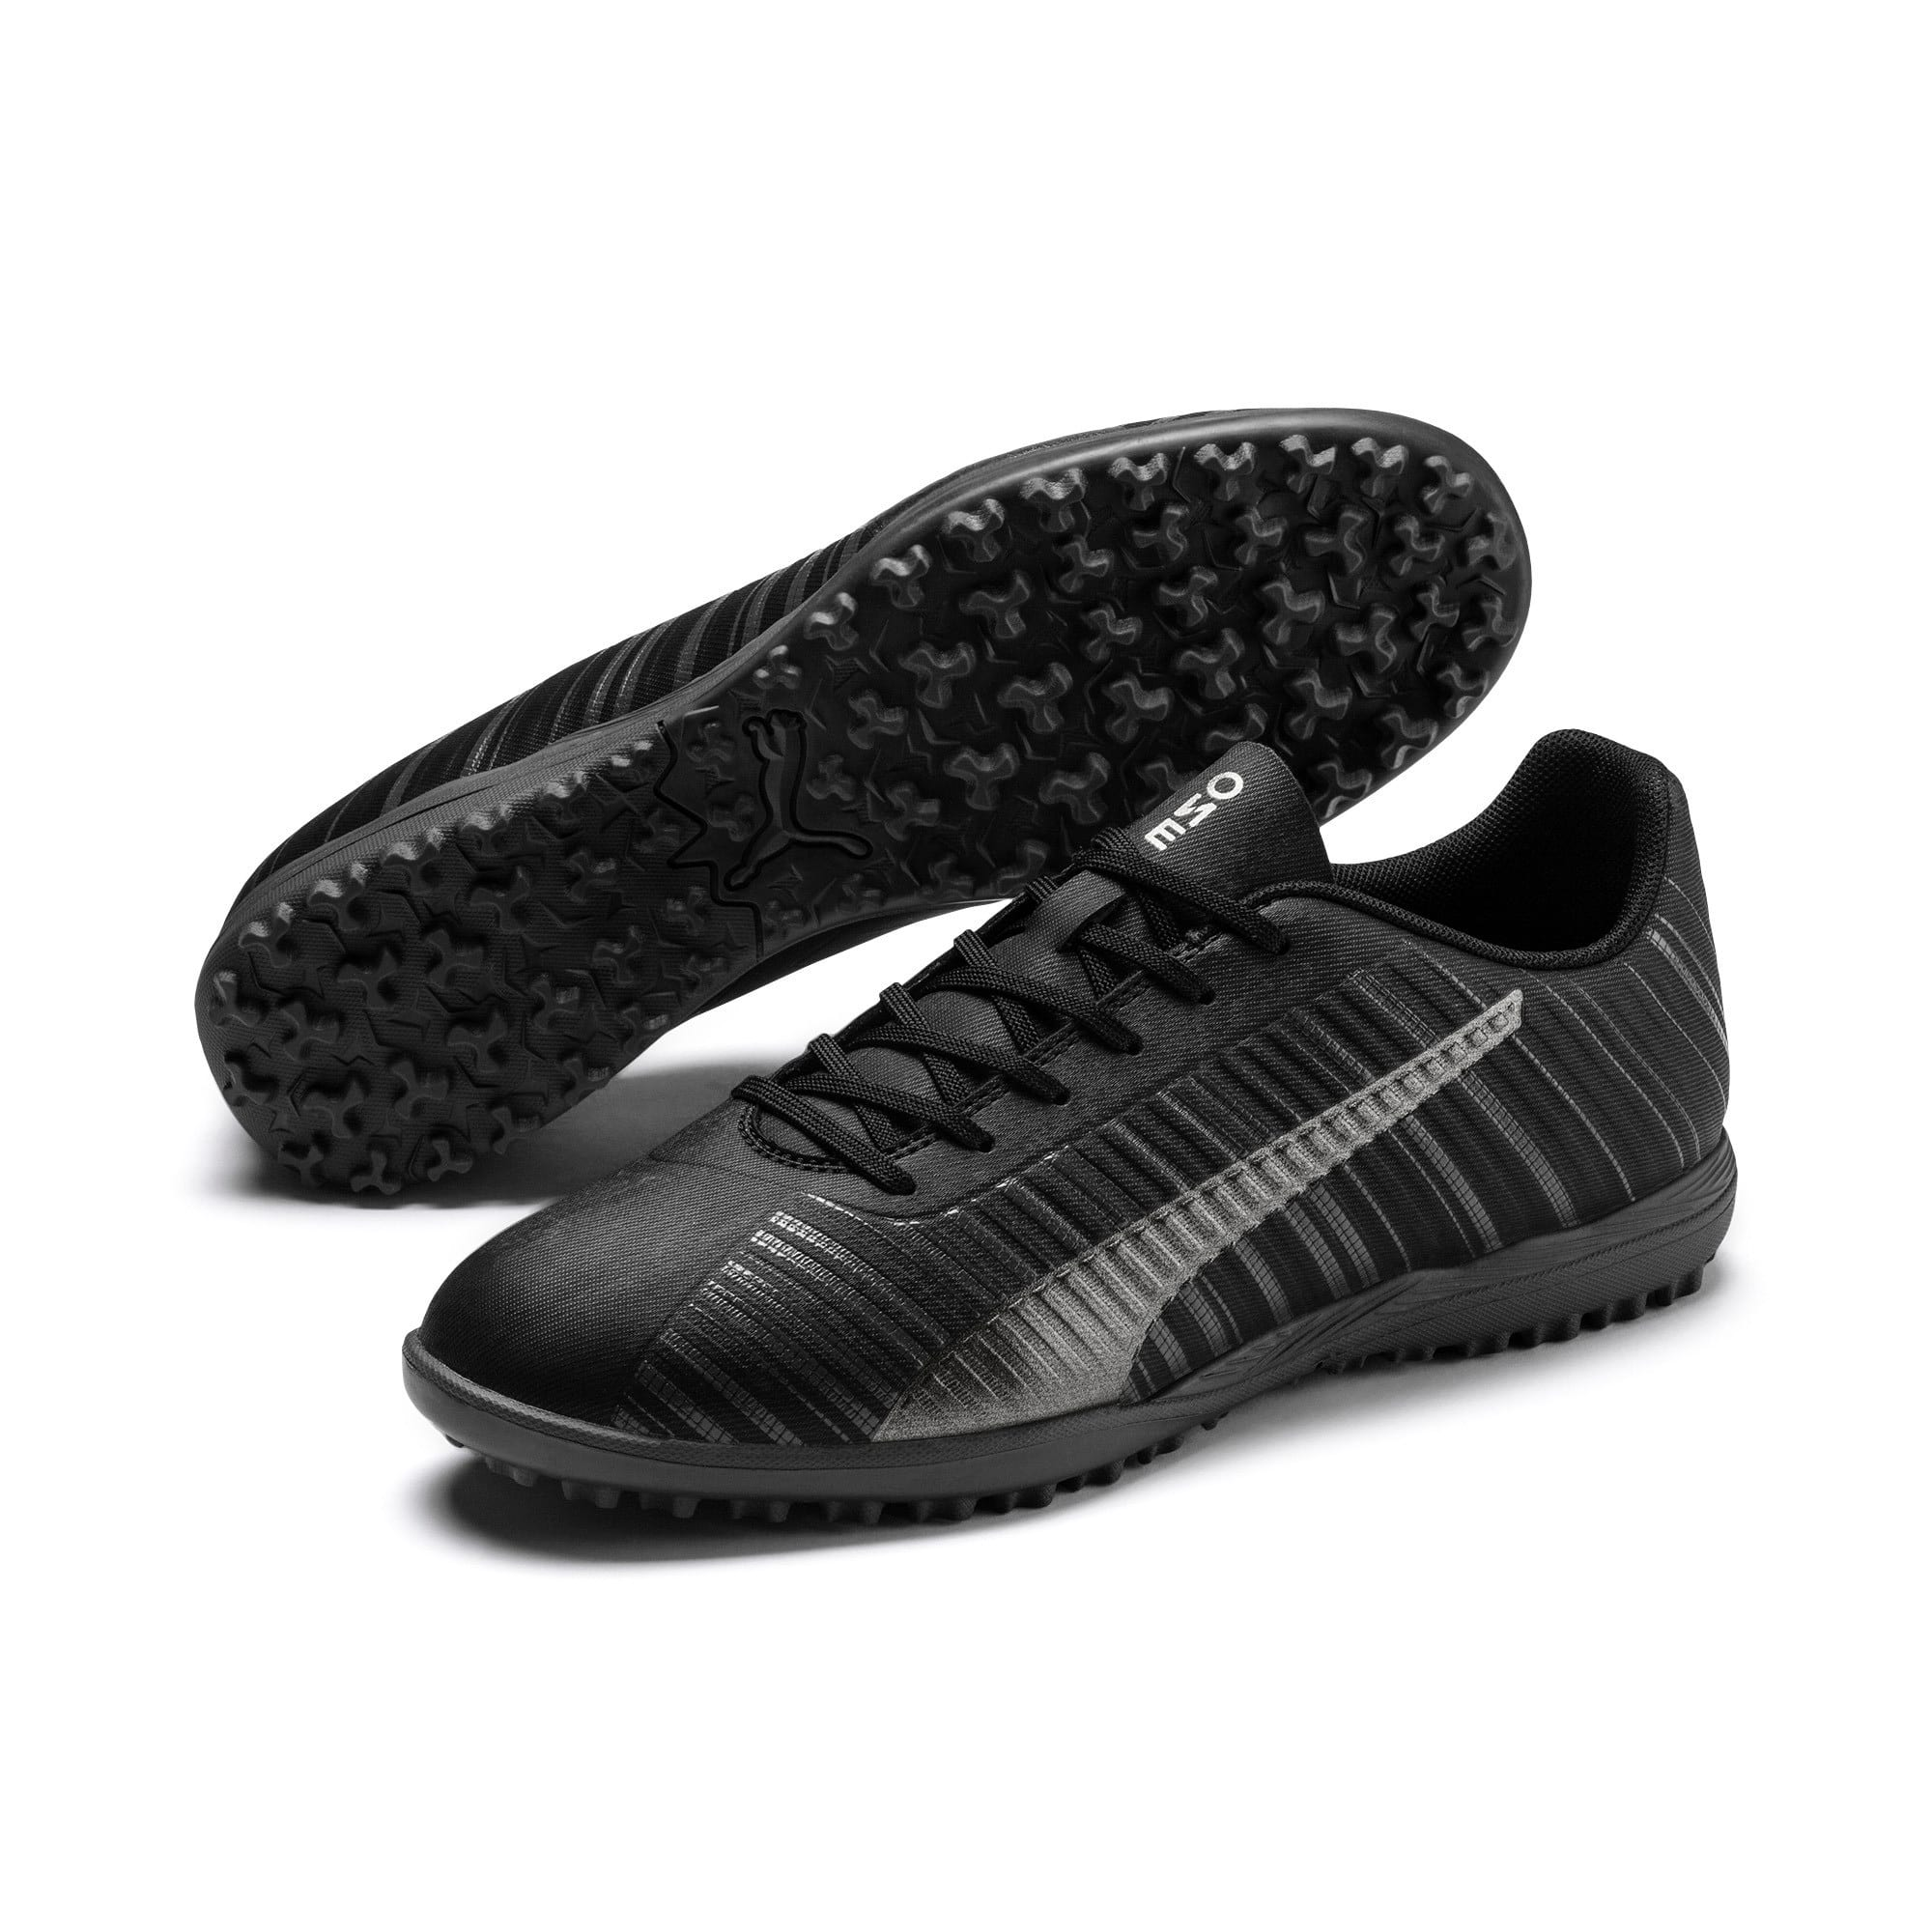 Thumbnail 3 of PUMA ONE 5.4 TT Men's Football Boots, Black-Black-Puma Aged Silver, medium